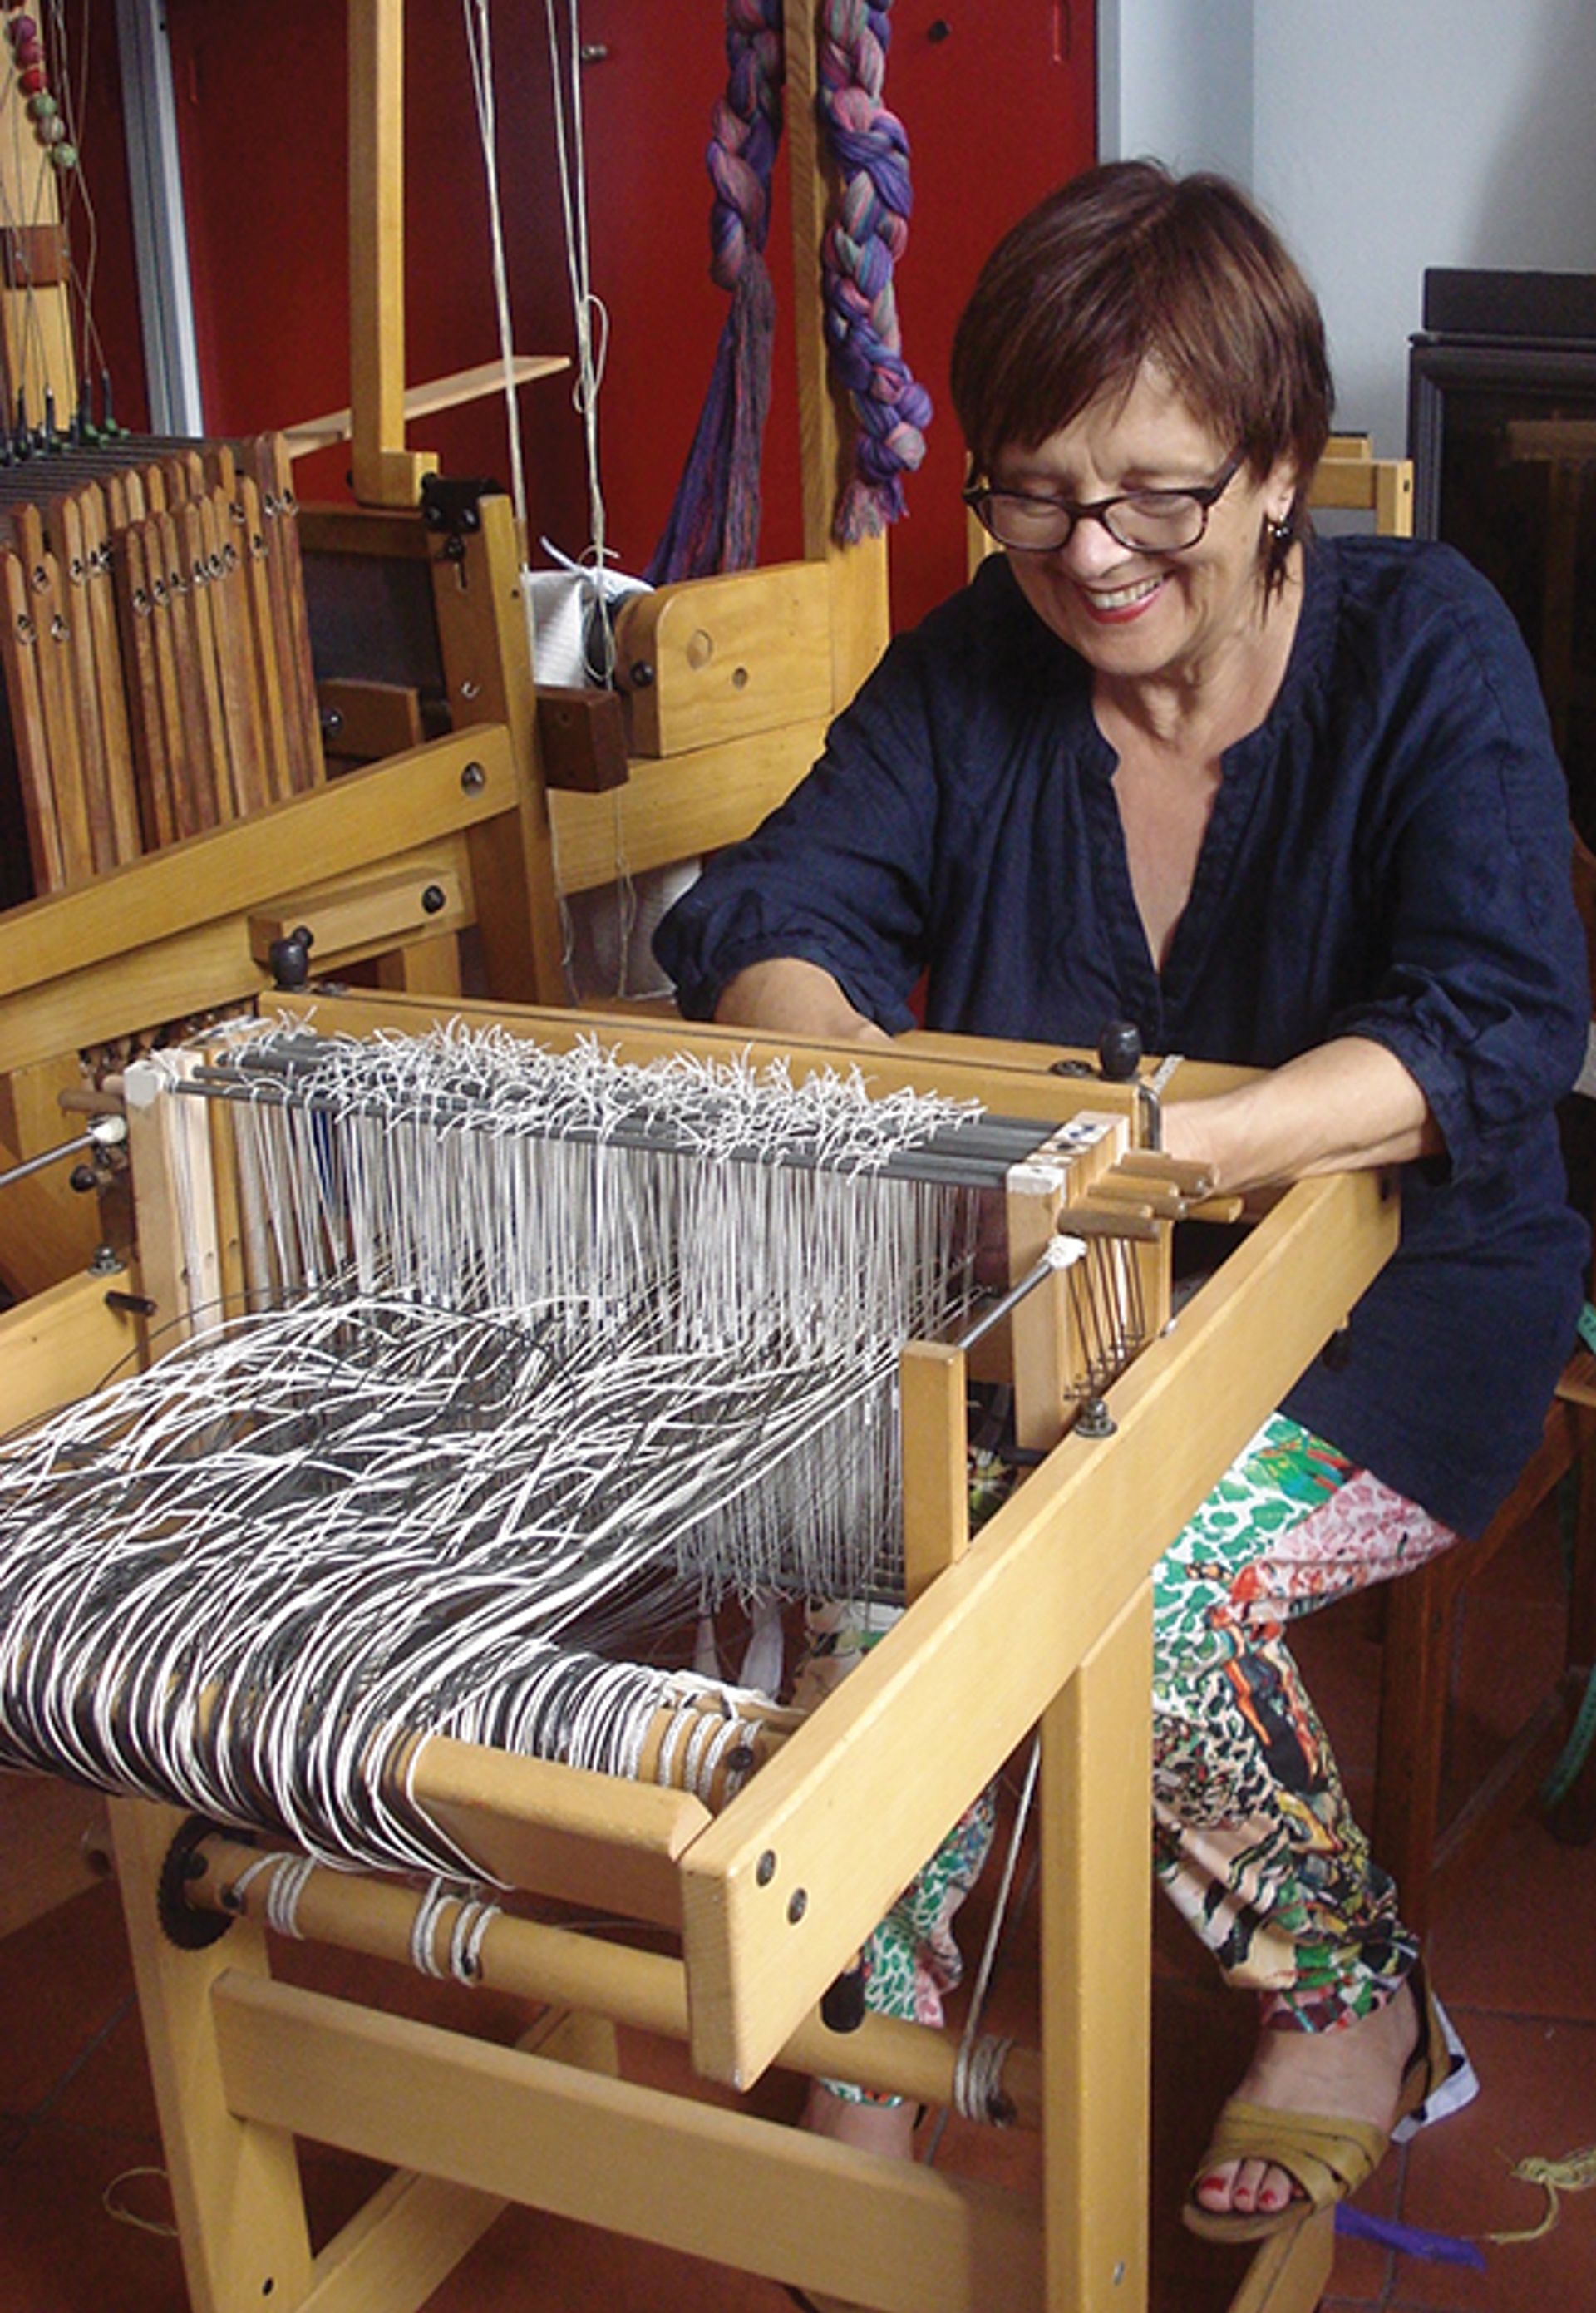 Helena Loermans works on a handloom at her studio in southern Portugal Courtesy of Helena Loermans